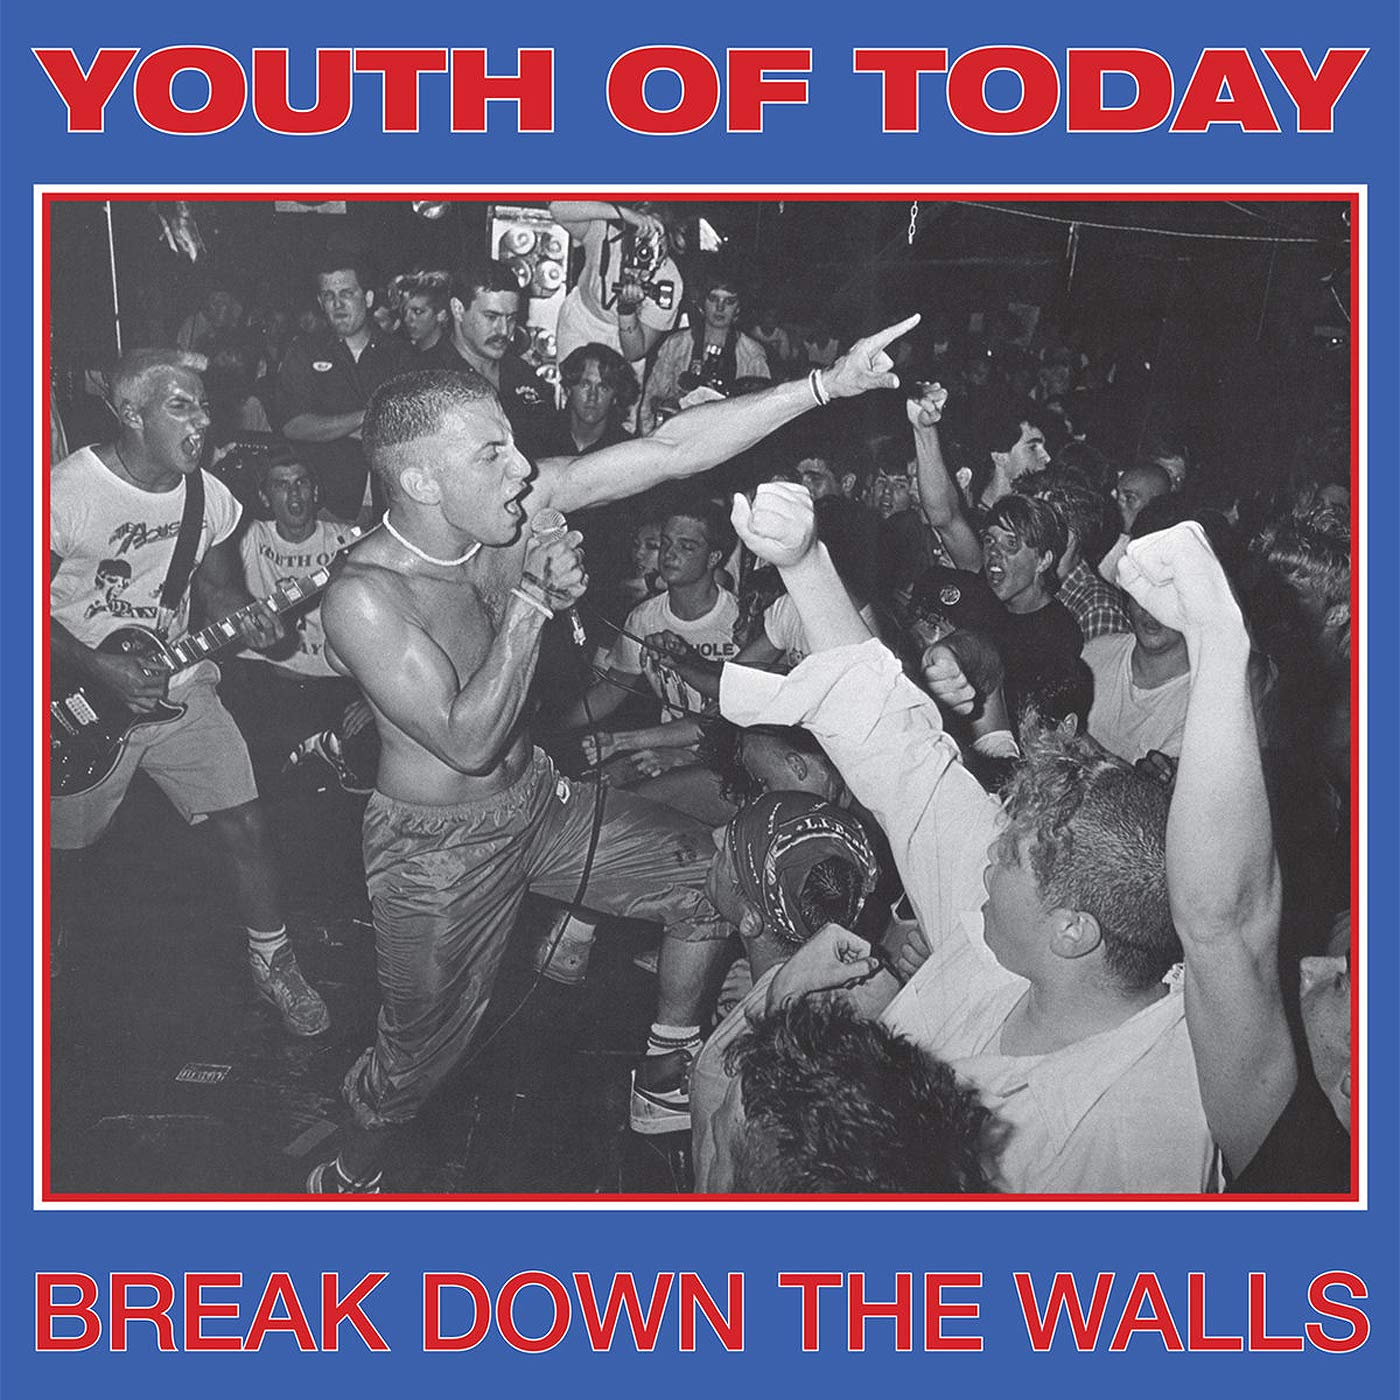 Break Down the Walls [Vinyl] by Revelation